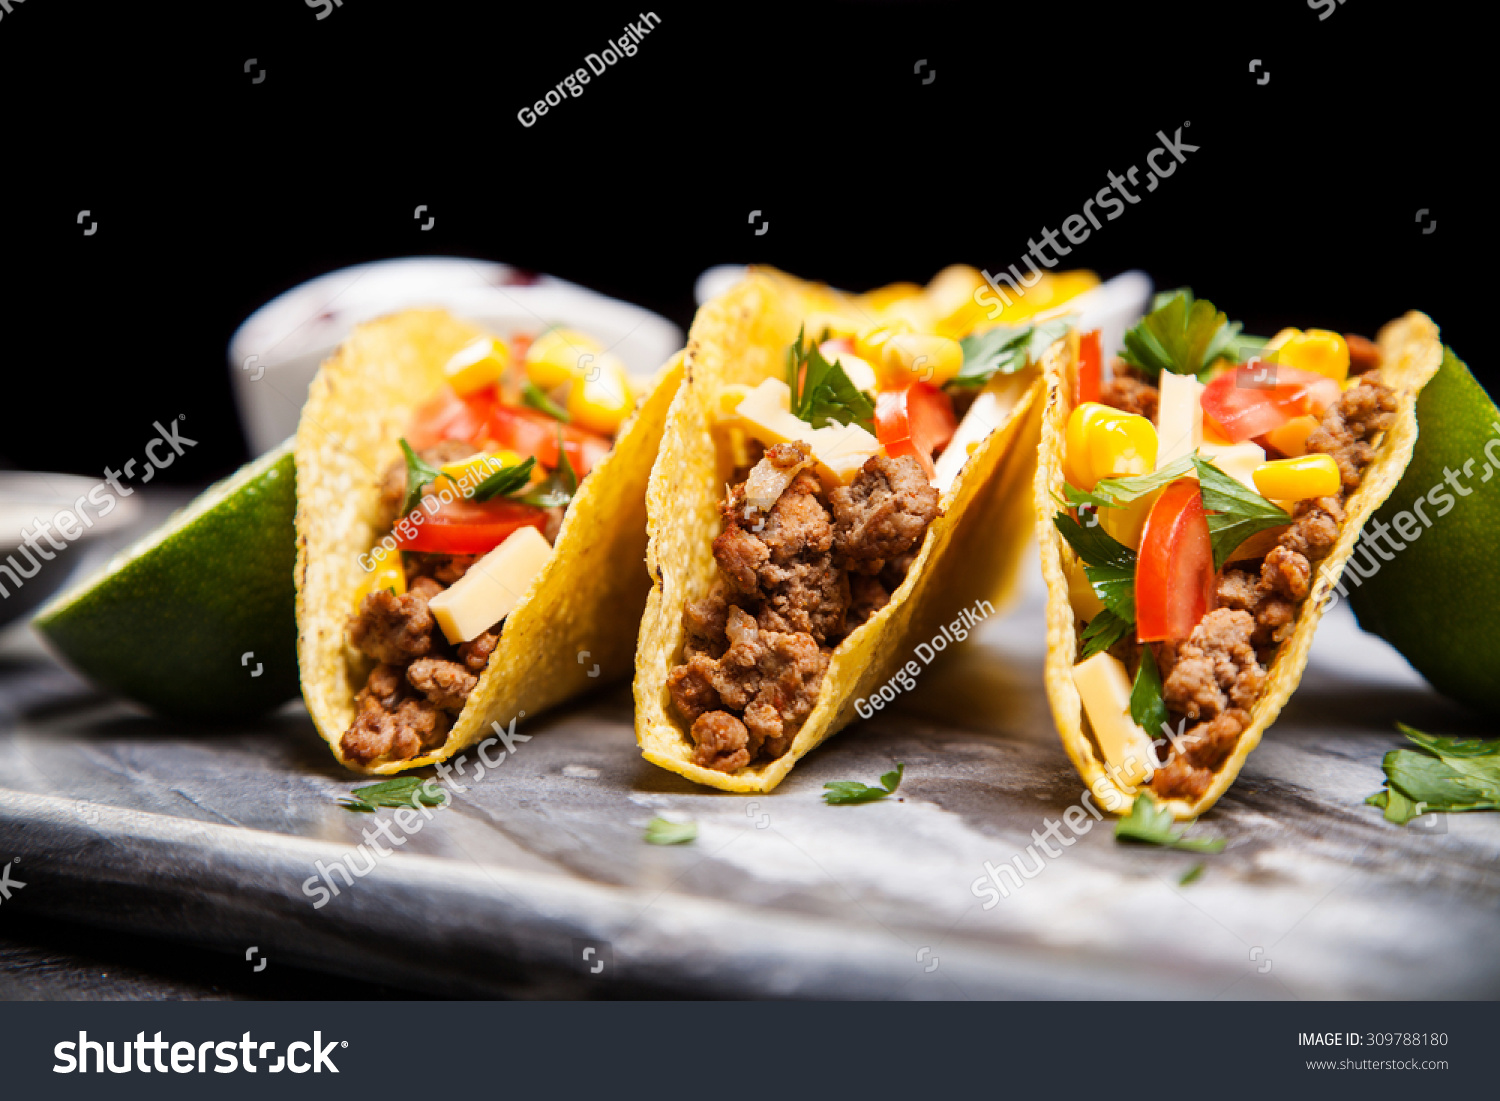 Mexican Food - Delicious Tacos With Ground Beef Stock ...